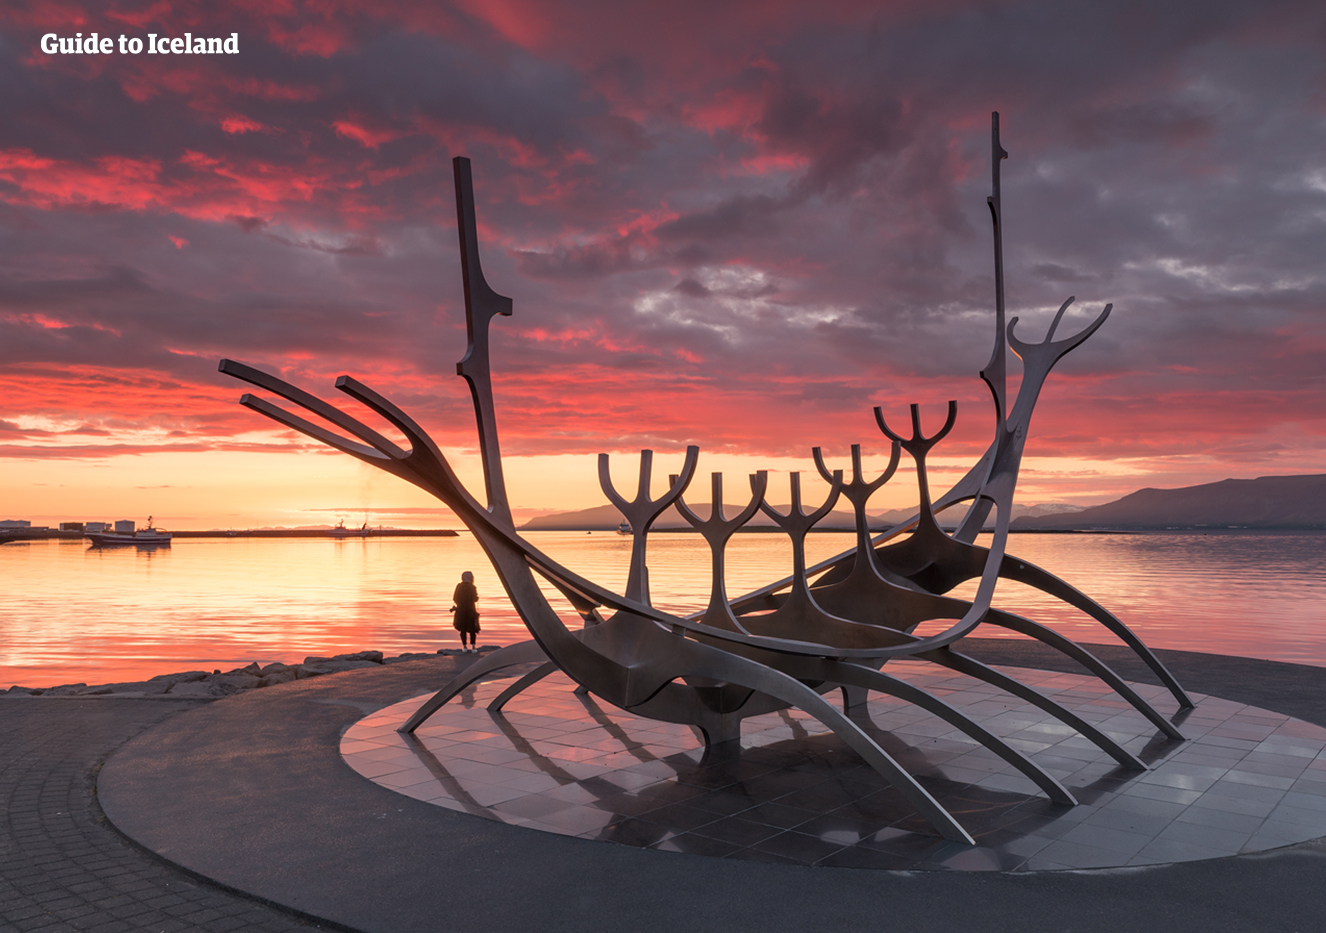 10 Day Summer Vacation in Iceland with Flights from Reykjavik to Akureyri, Waterfalls & Hot Springs - day 9